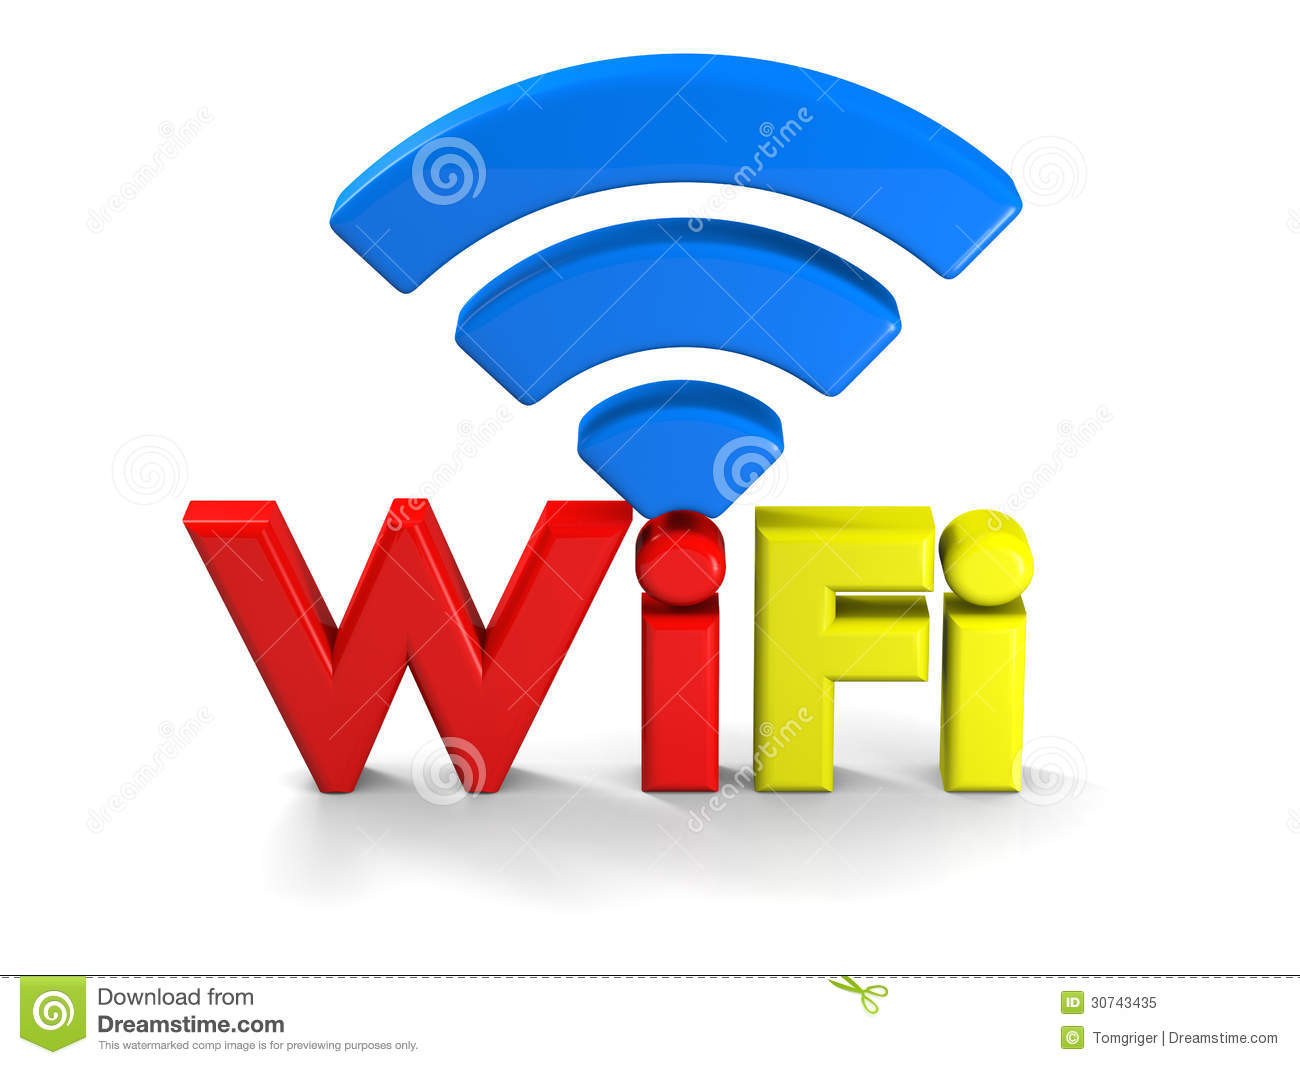 how to download from the university wifi